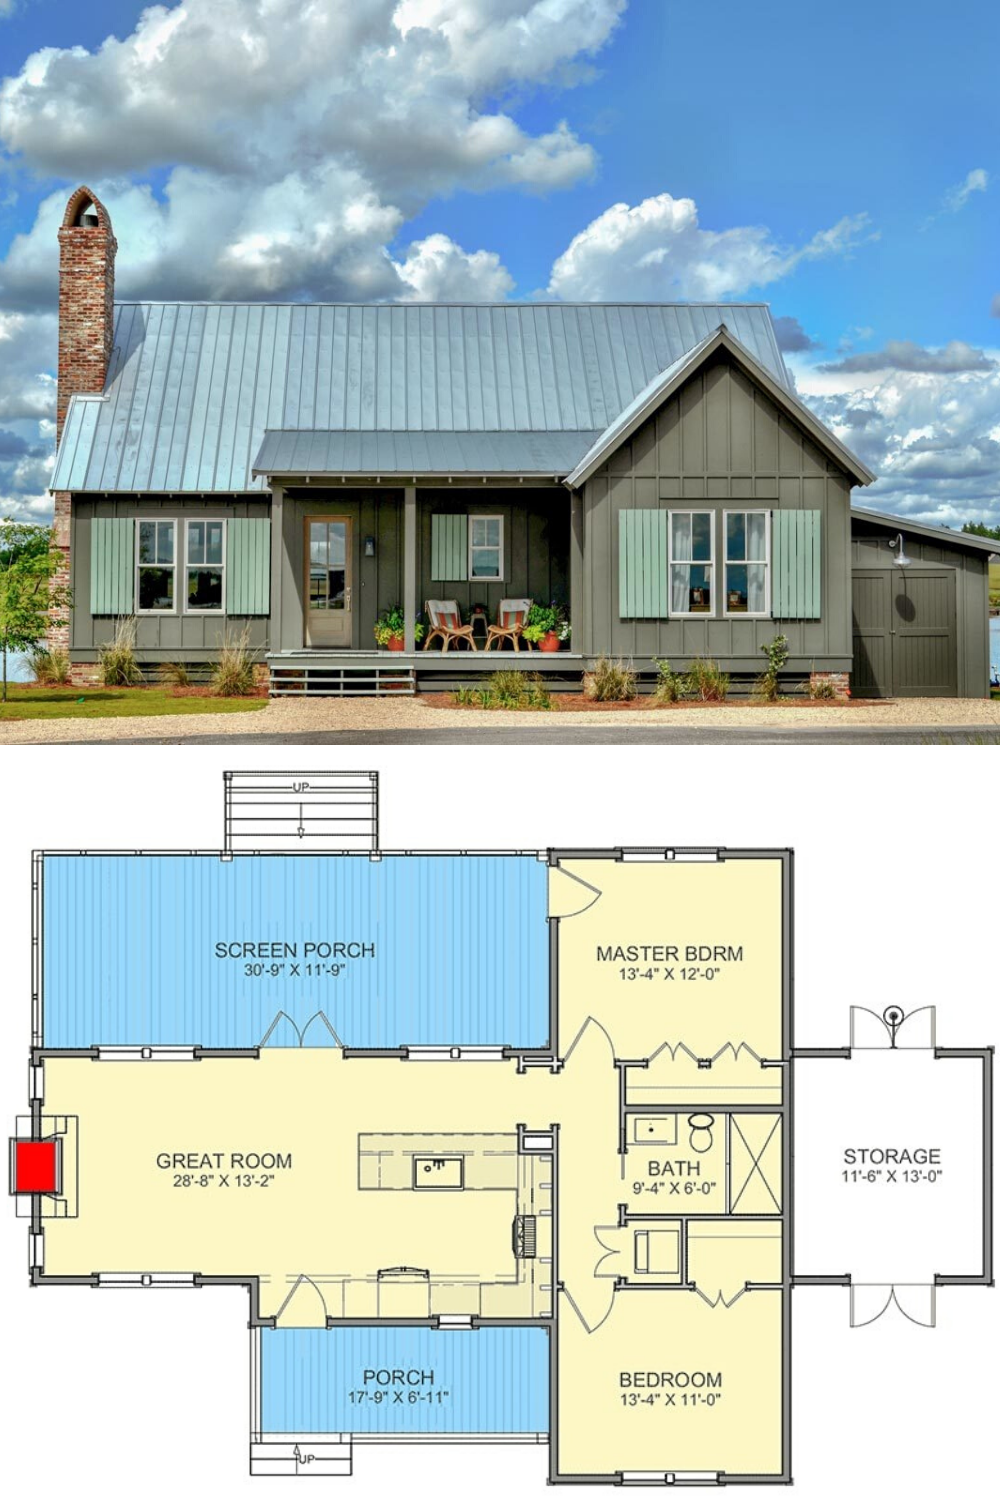 2 Bedroom Single Story Cottage With Screened Porch Floor Plan Cottage Floor Plans Tiny House Cabin Cottage House Plans